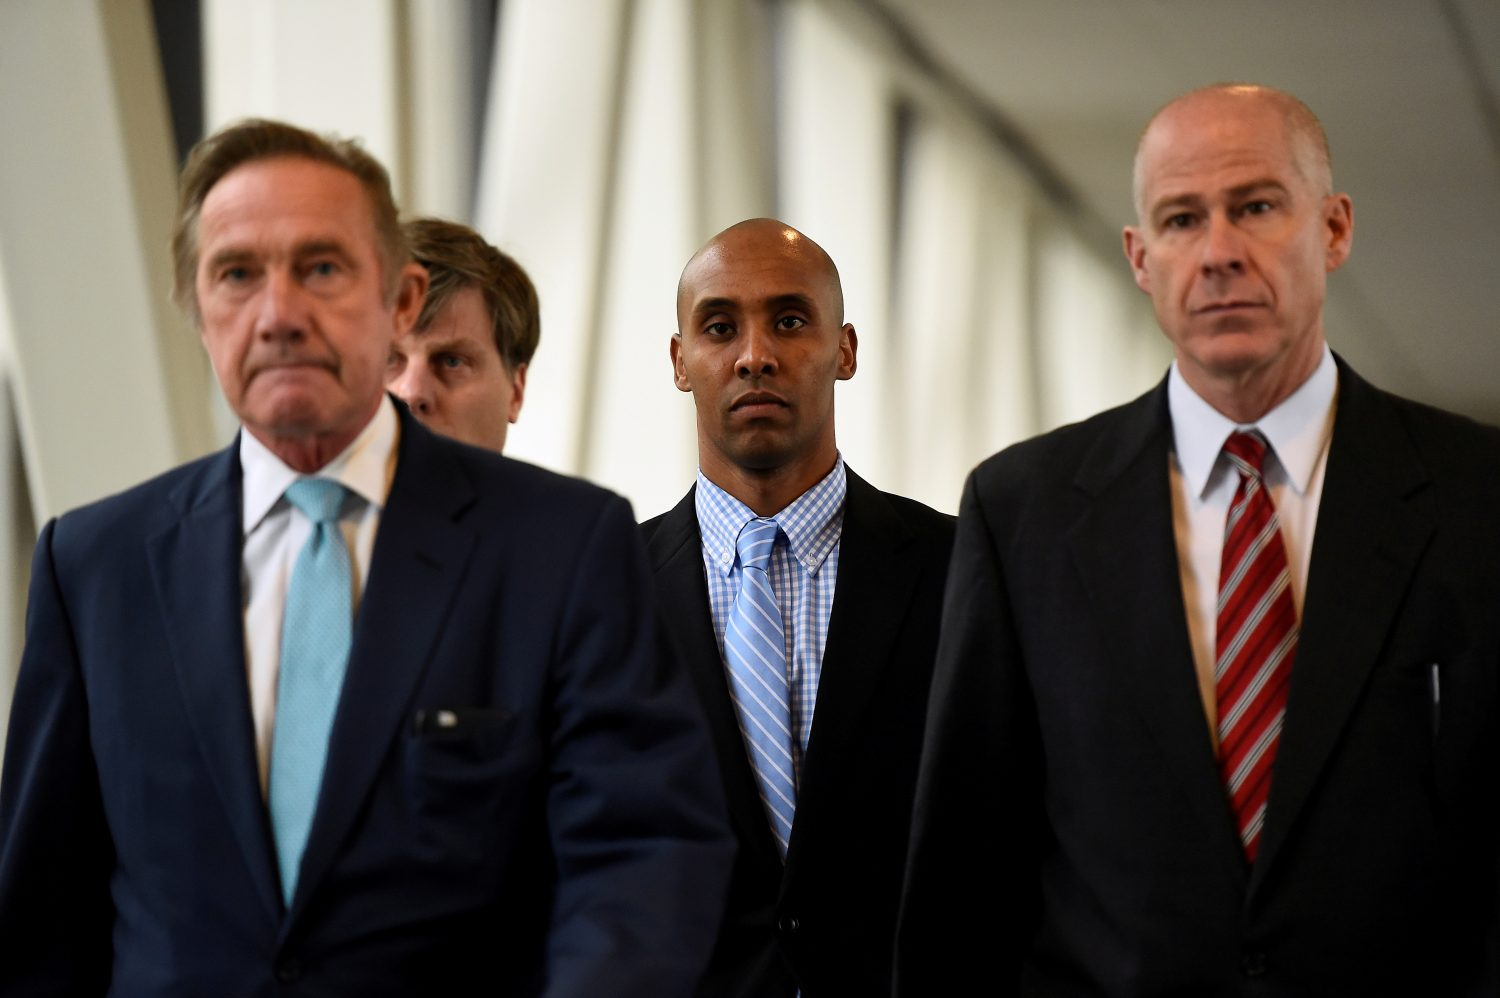 FILE PHOTO: Mohamed Noor, center, former Minnesota policeman on trial for fatally shooting an Australian woman, walks into the courthouse in Minneapolis, Minnesota, U.S., April 30, 2019. REUTERS/Craig Lassig/File Photo - RC1DDA04DCD0